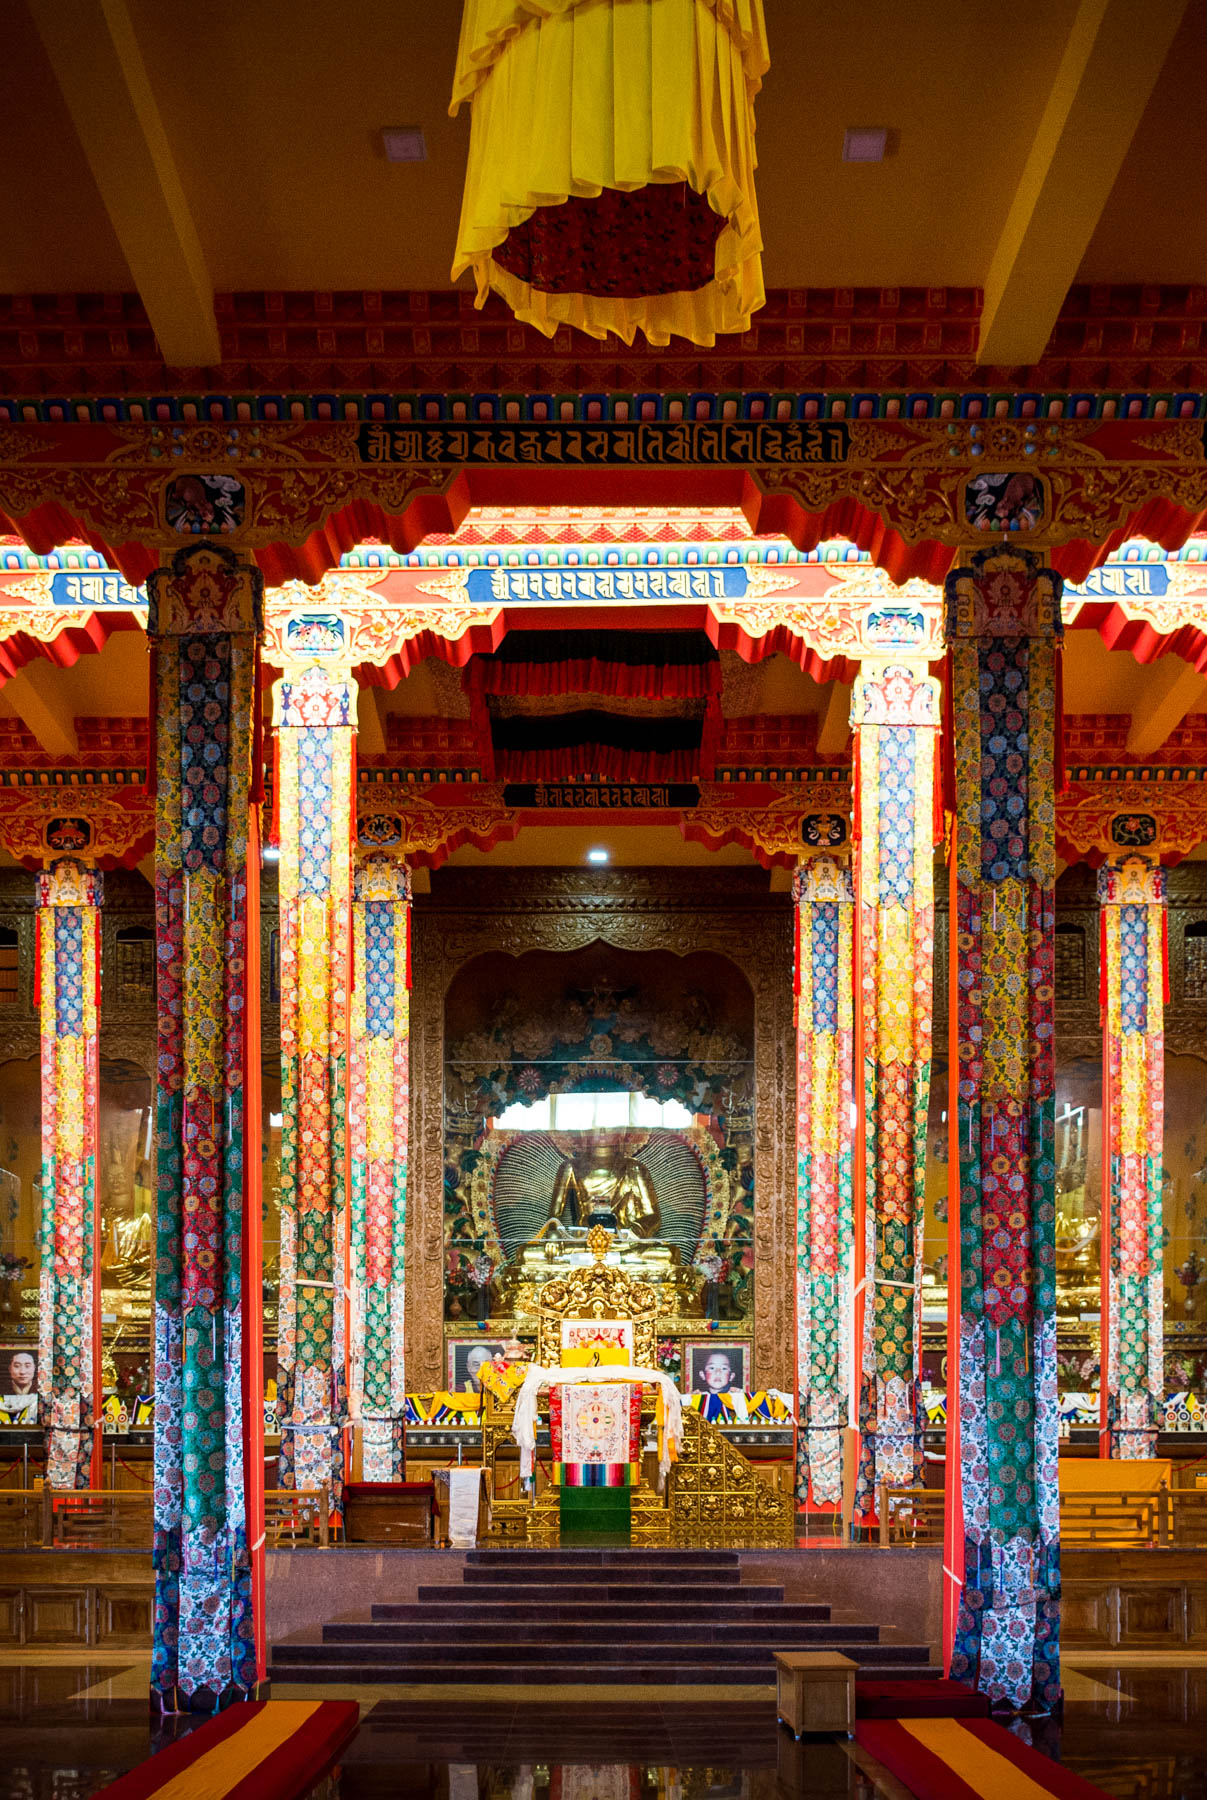 The interior of the serene Tashi Lhunpo monastery, a Buddhist monastery in Bylakuppe, India's second largest Tibetan settlement. Bylakuppe is a great destination to visit if you're looking for off the beaten track places in Karnataka state!